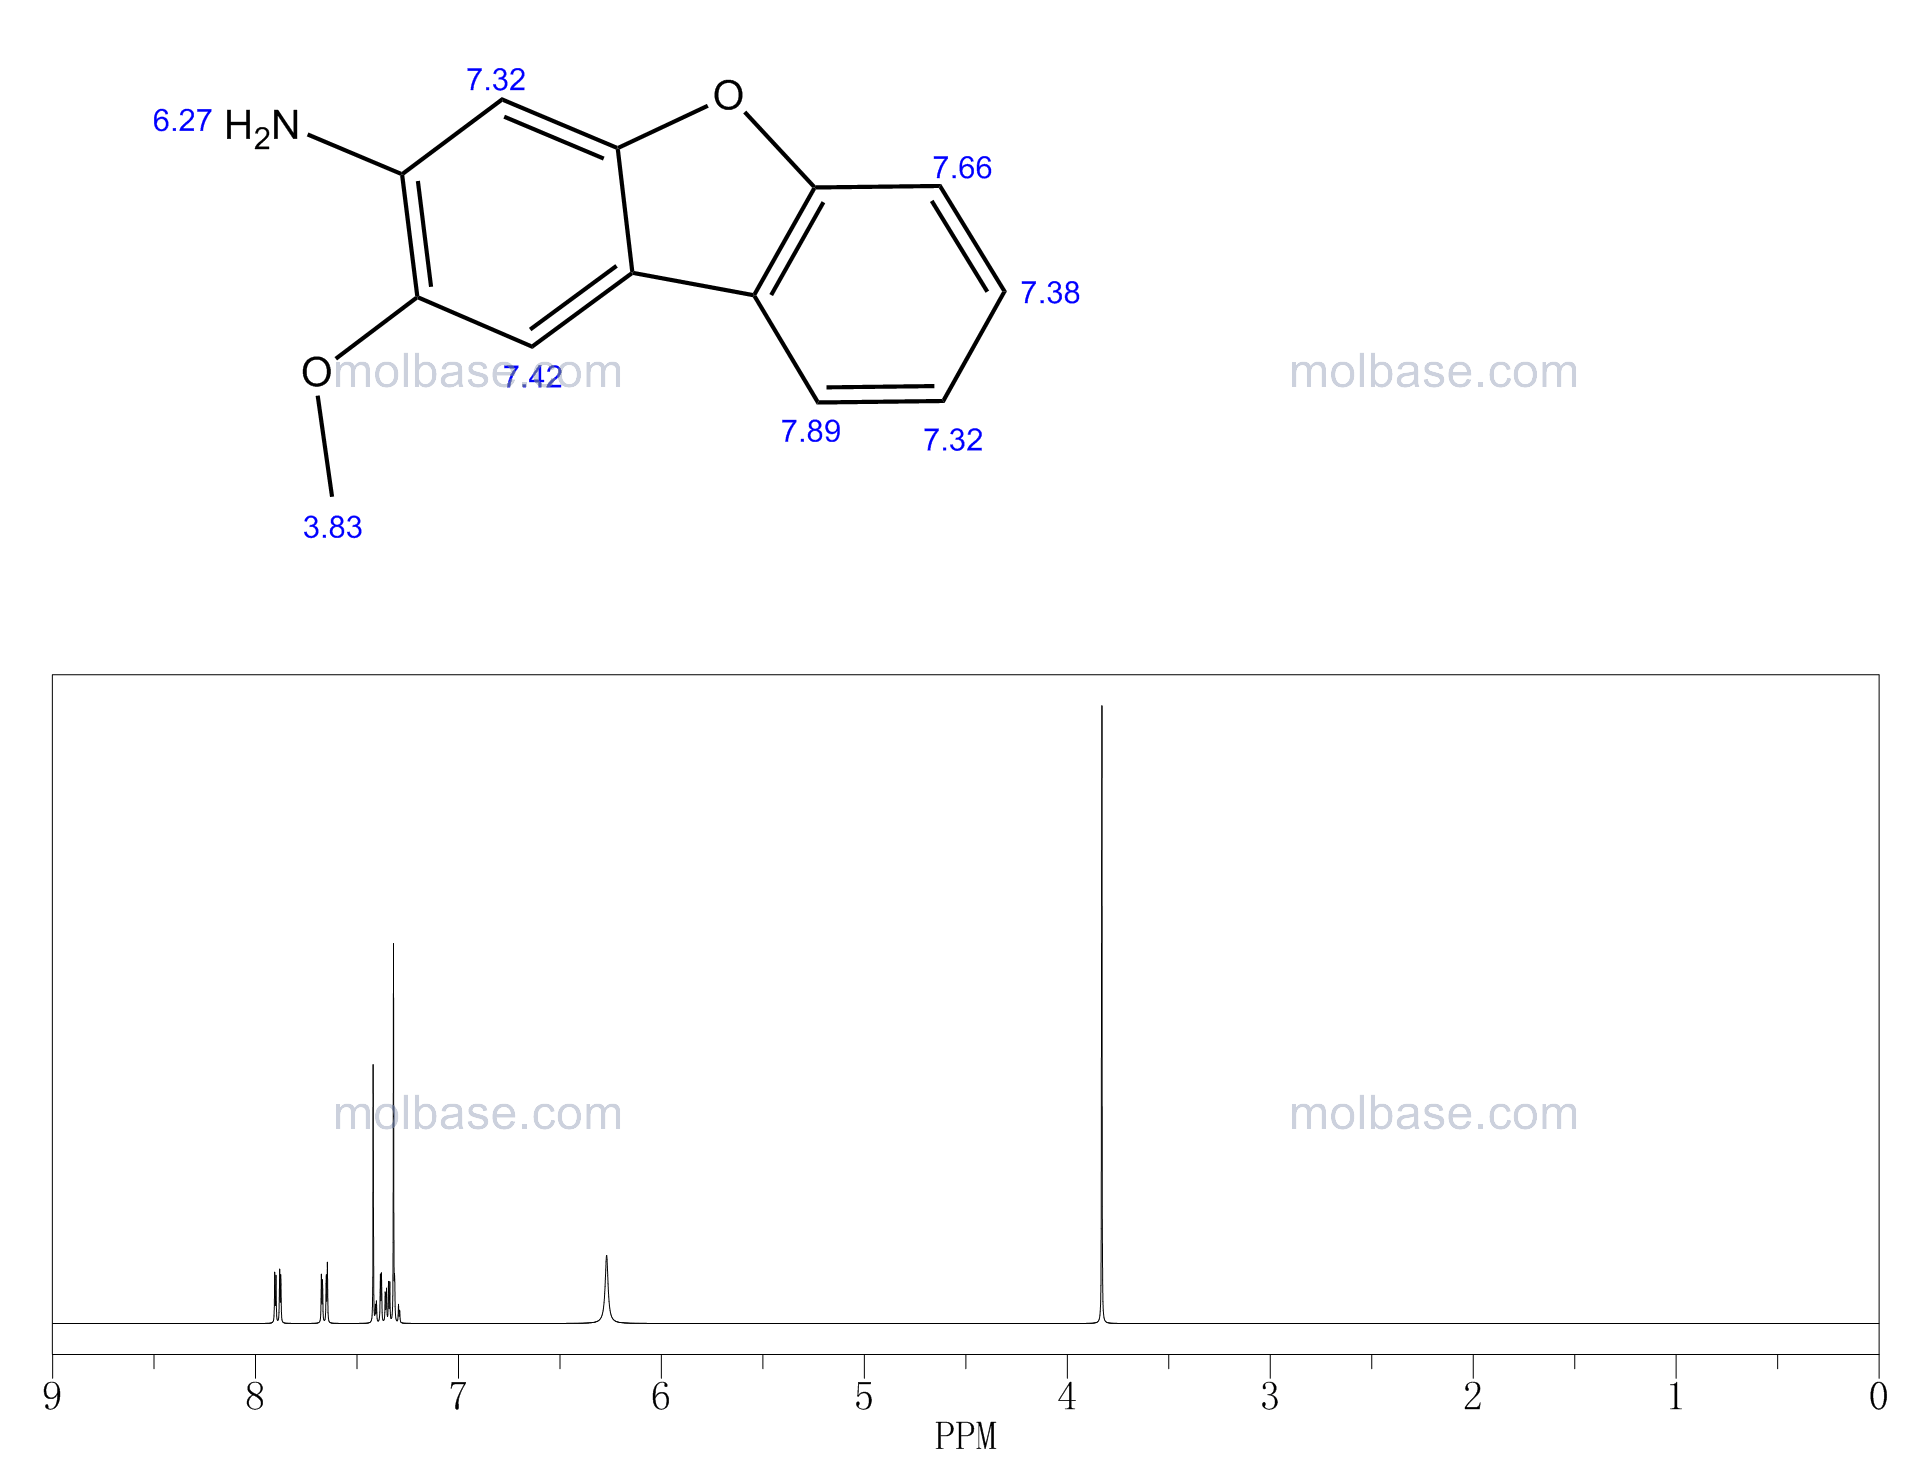 2-methoxydibenzofuran-3-amine NMR spectra analysis, Chemical CAS NO. 5834-17-3 NMR spectral analysis, 2-methoxydibenzofuran-3-amine C-NMR spectrum